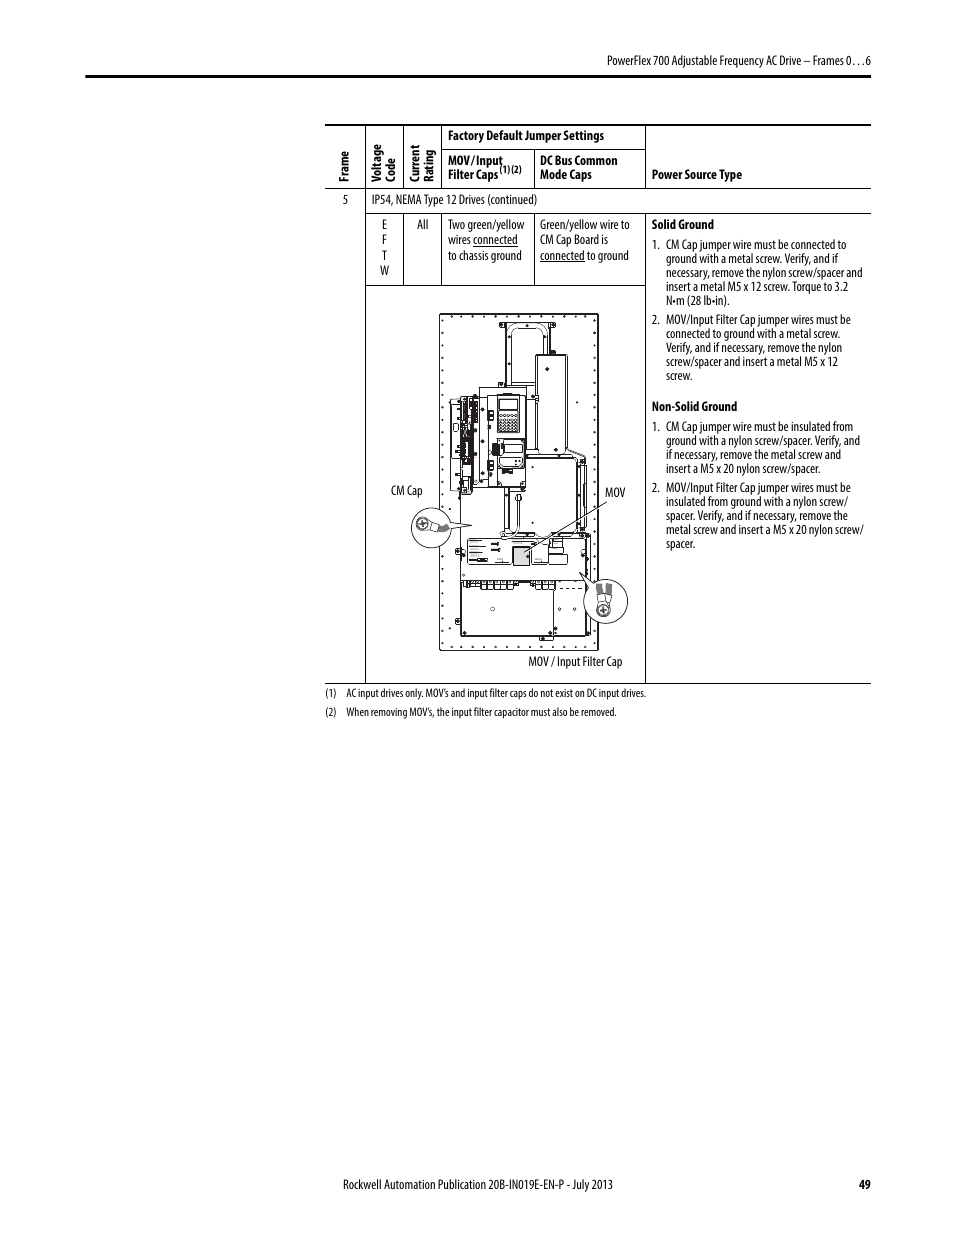 Powerflex 755 Wiring Diagrams Detailed 753 Control Diagram 700 Frame 6 Opinions About U2022 O I